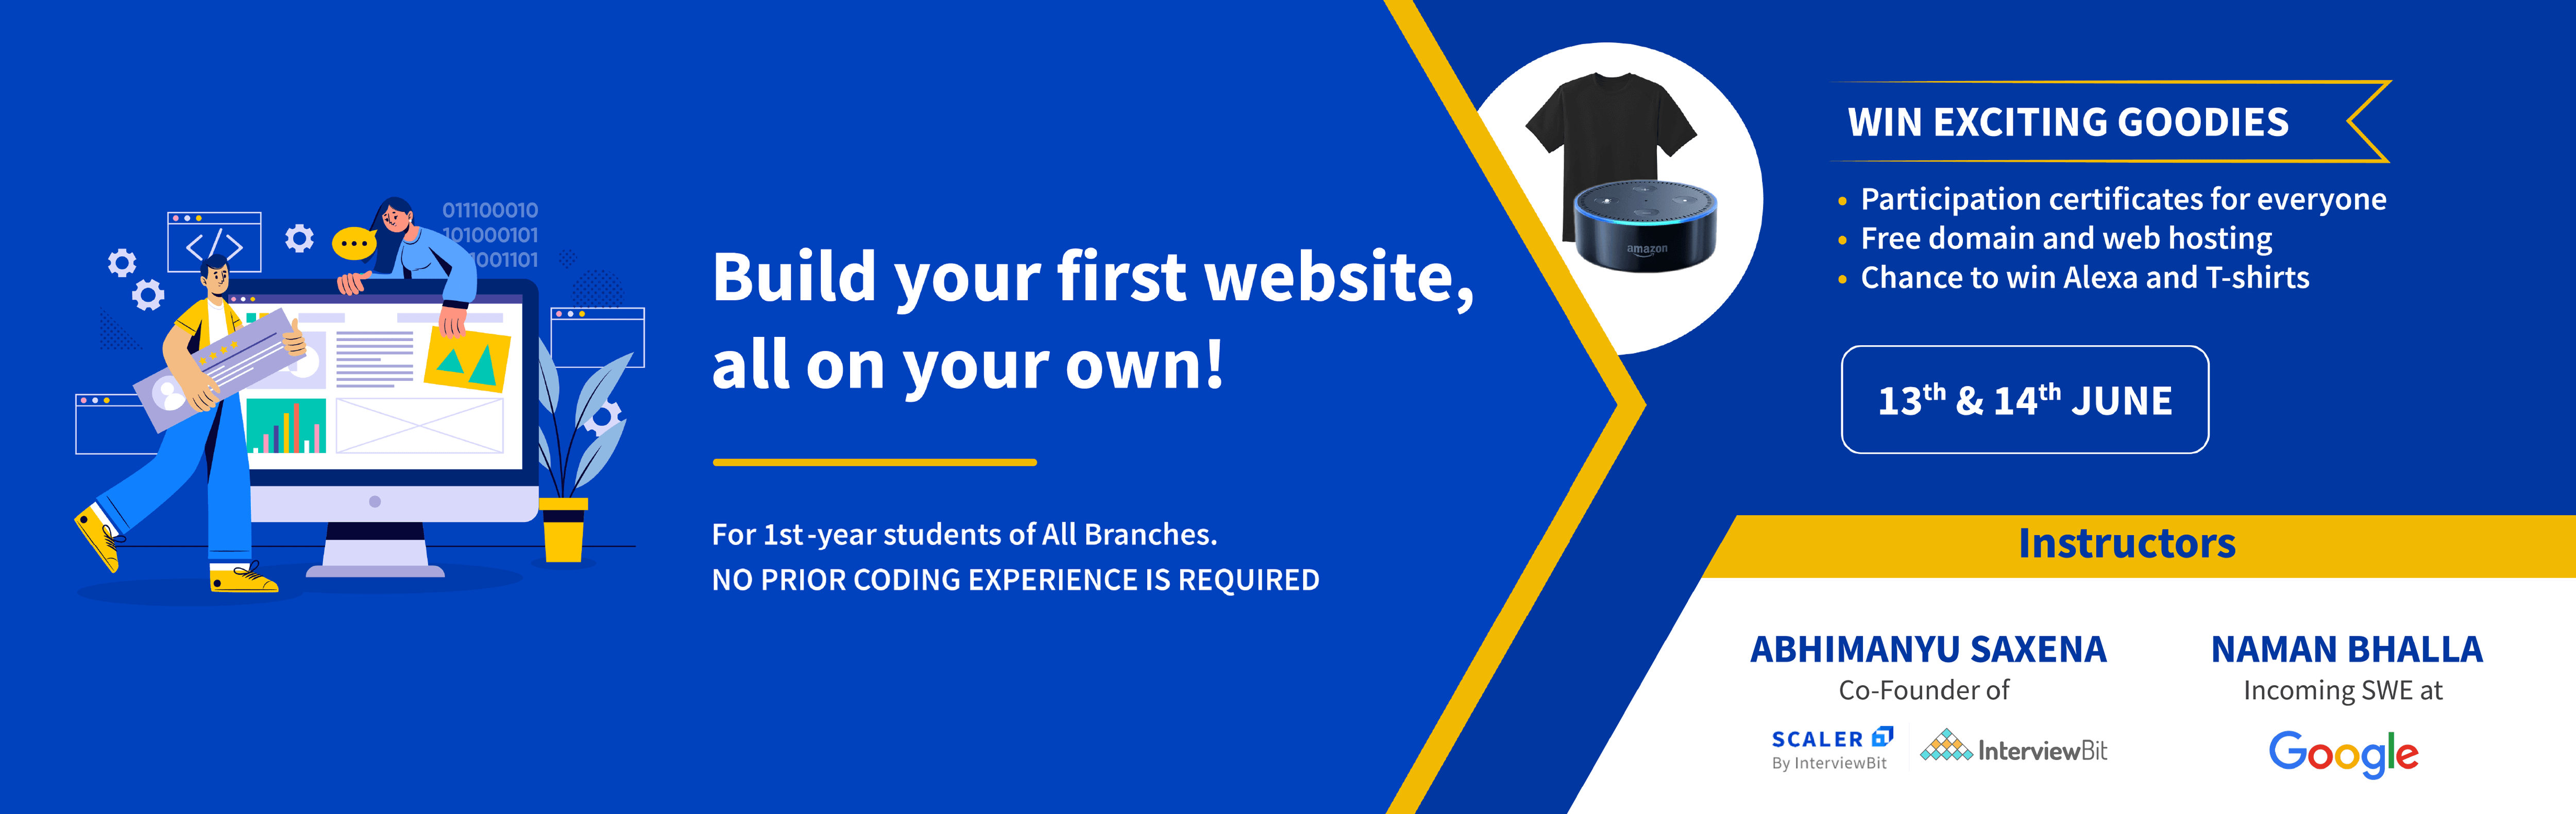 Build your first website all on your own!